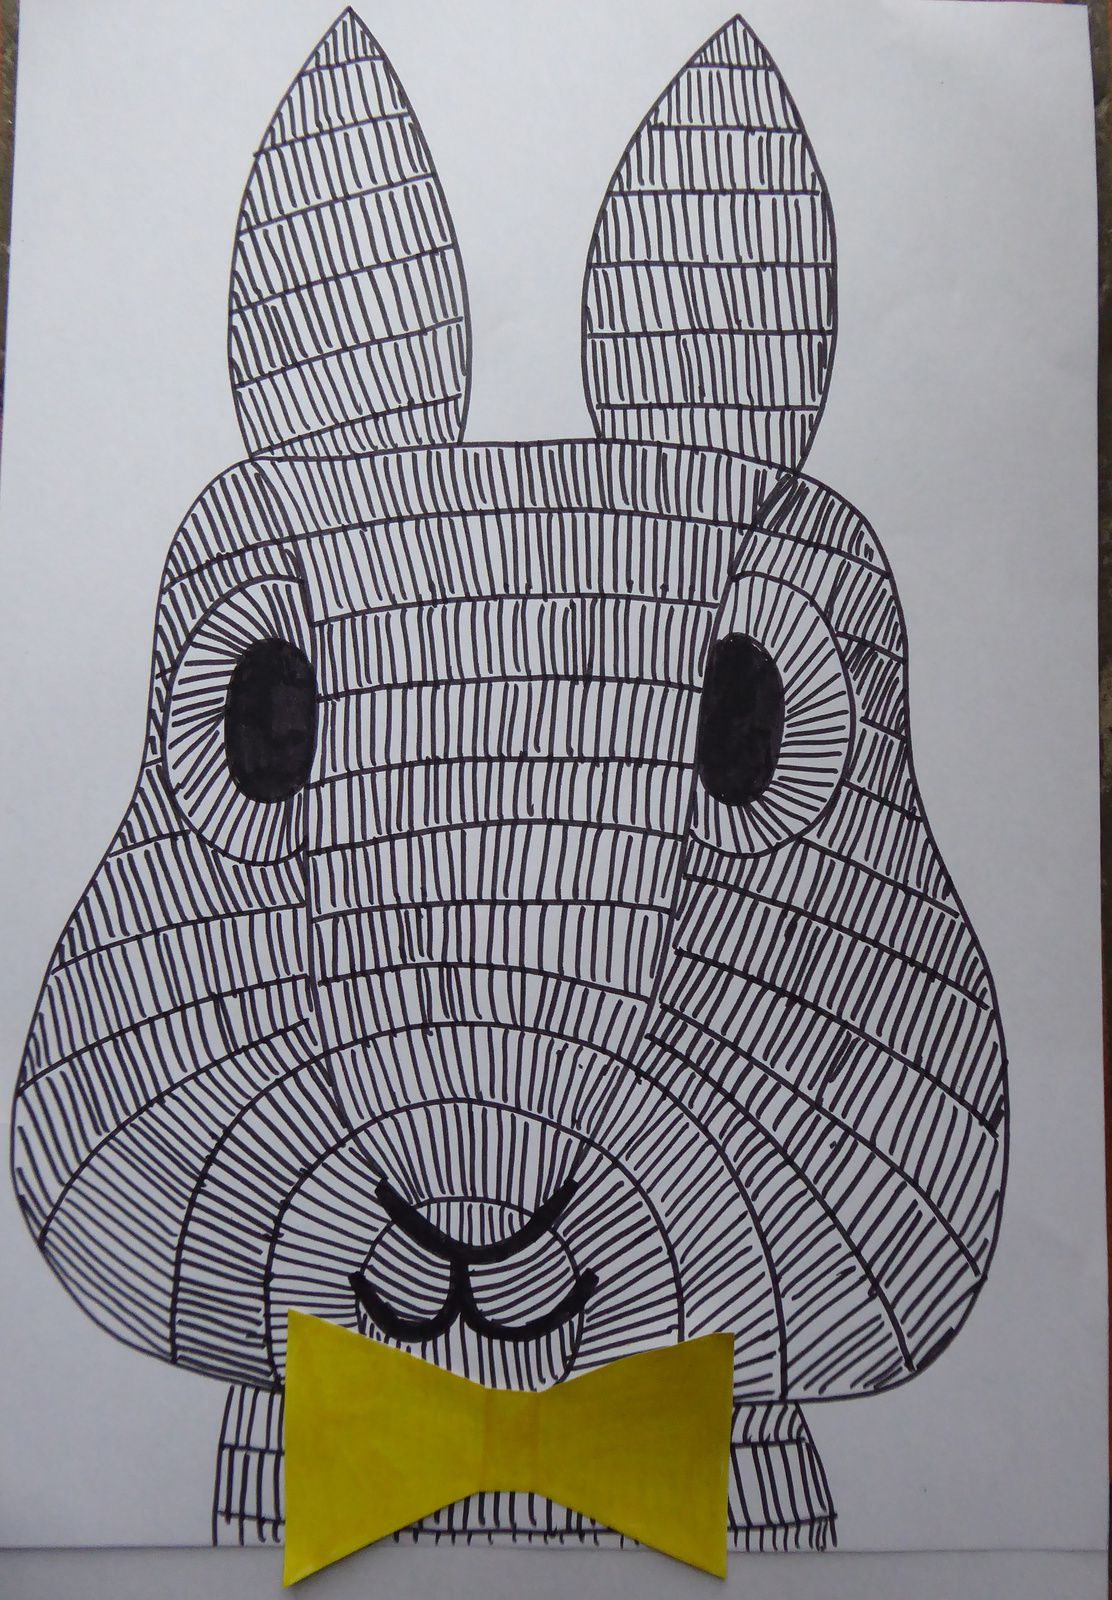 Le lapin à rayures